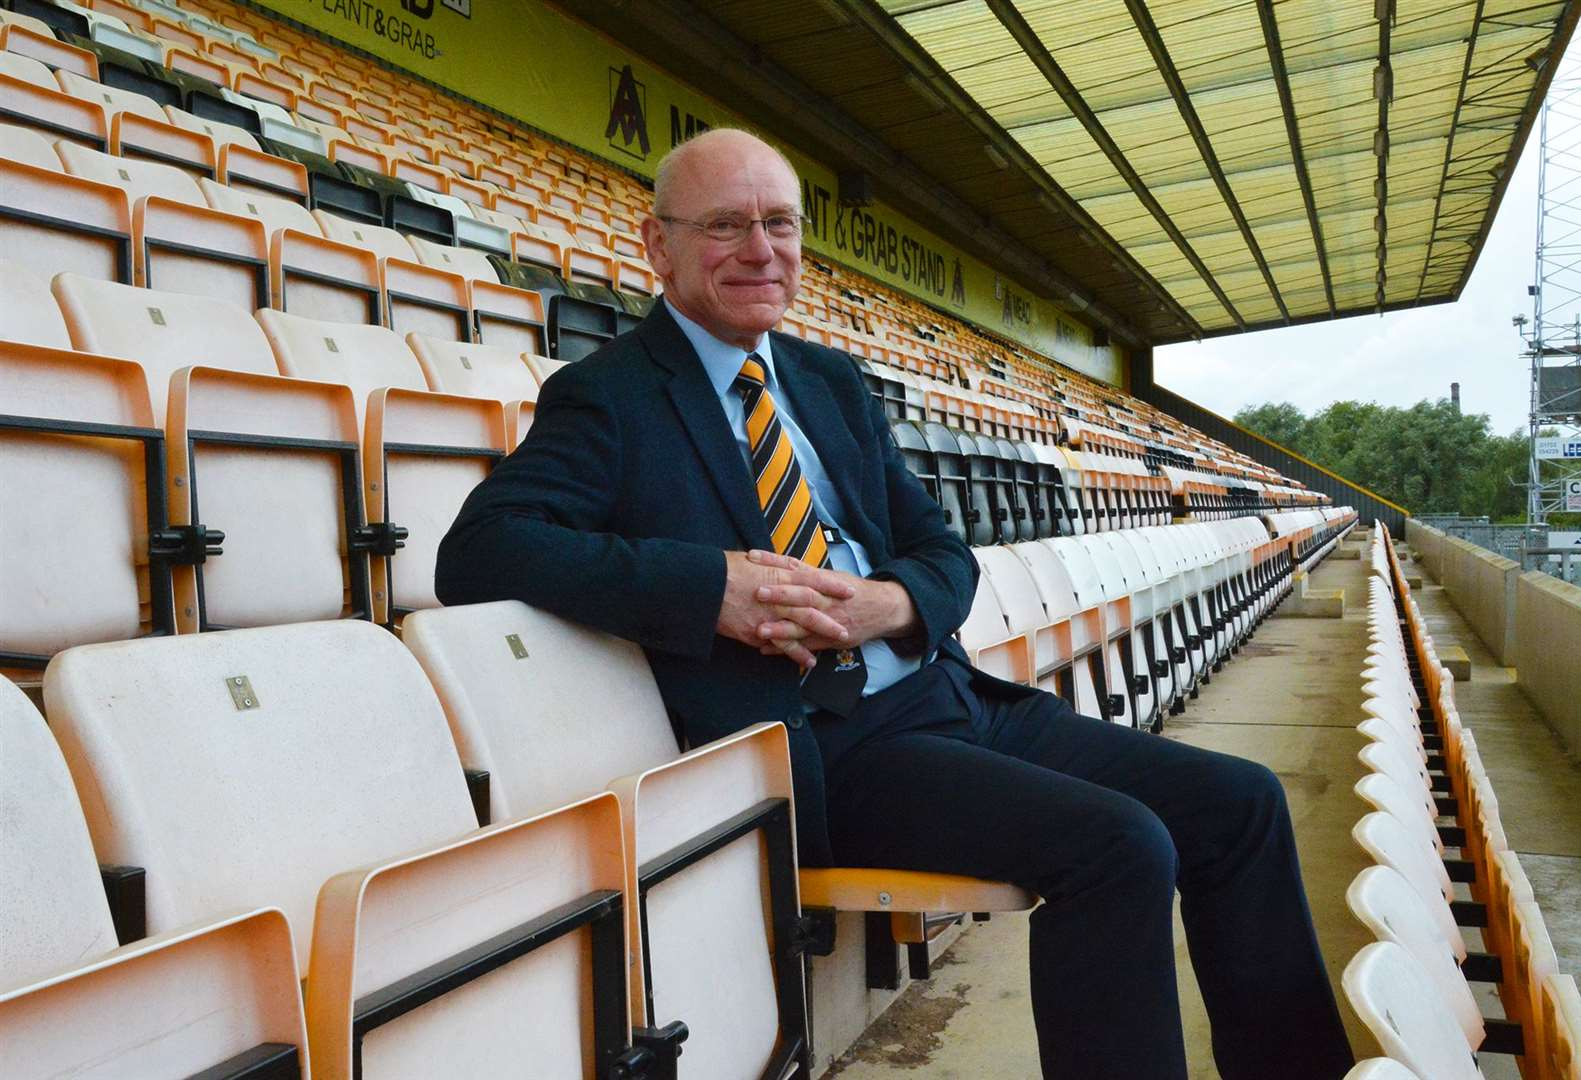 Cambridge United chief executive Ian Mather has thanked supporters.